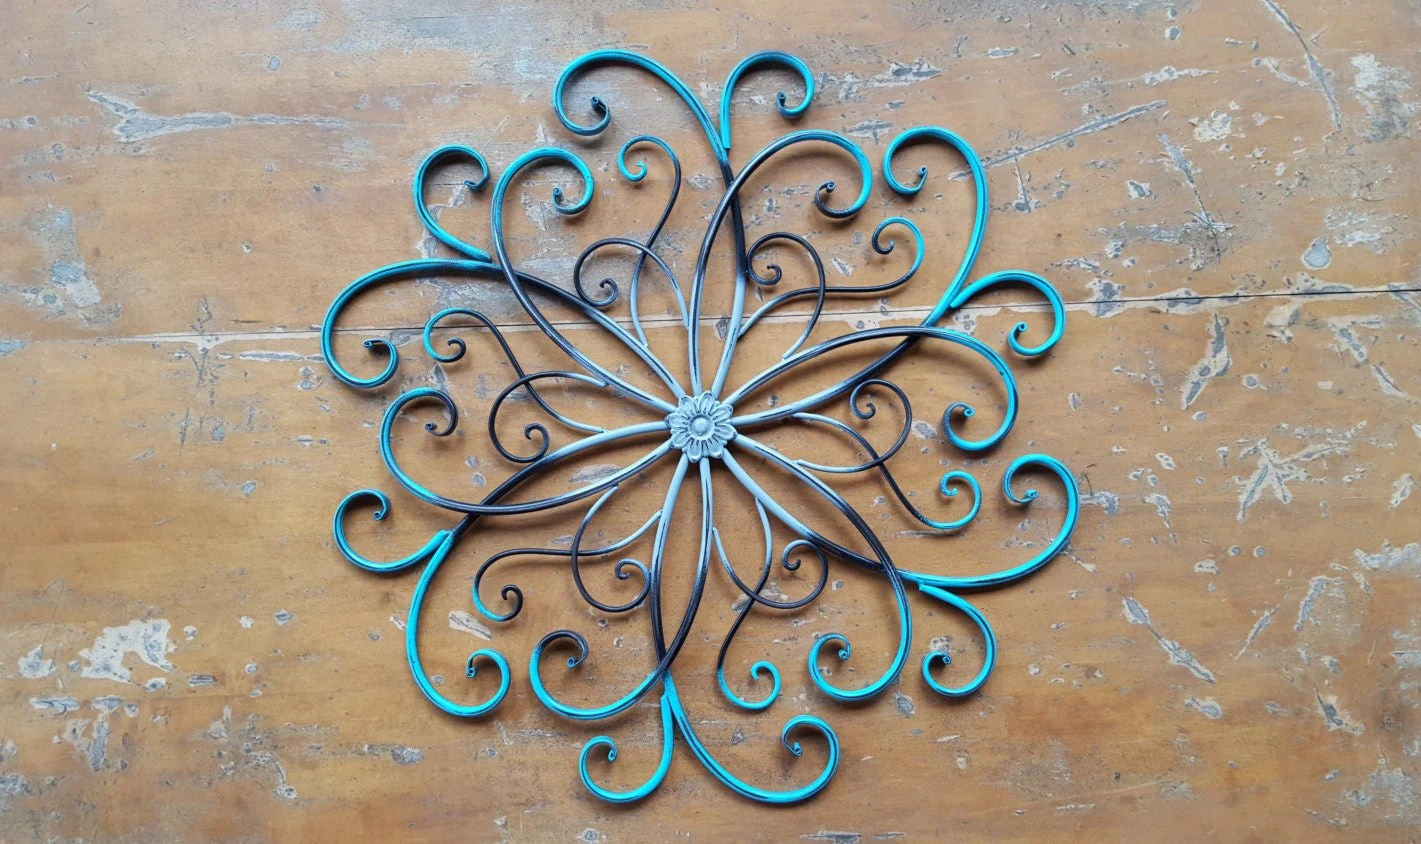 Large Metal Wall Art / Large Wrought Iron Wall Decor